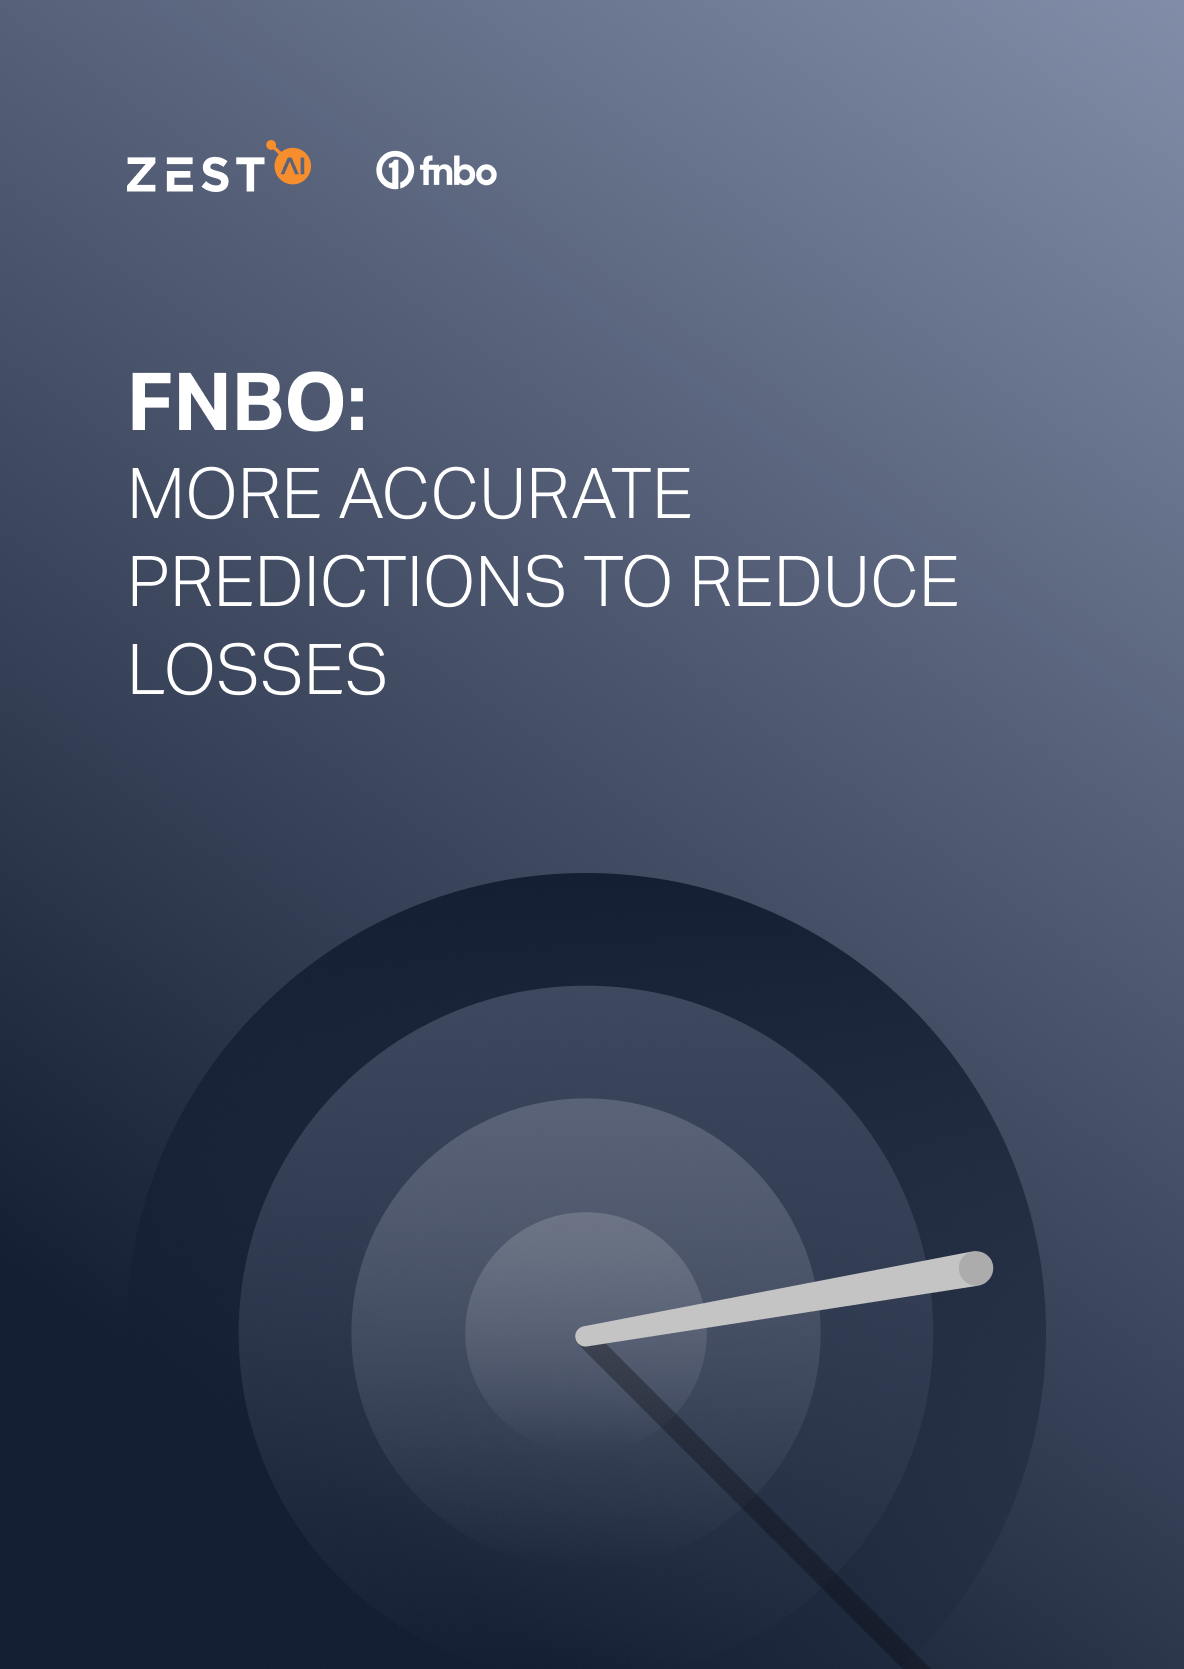 More accurate borrower predictions can lead to reducing credit losses